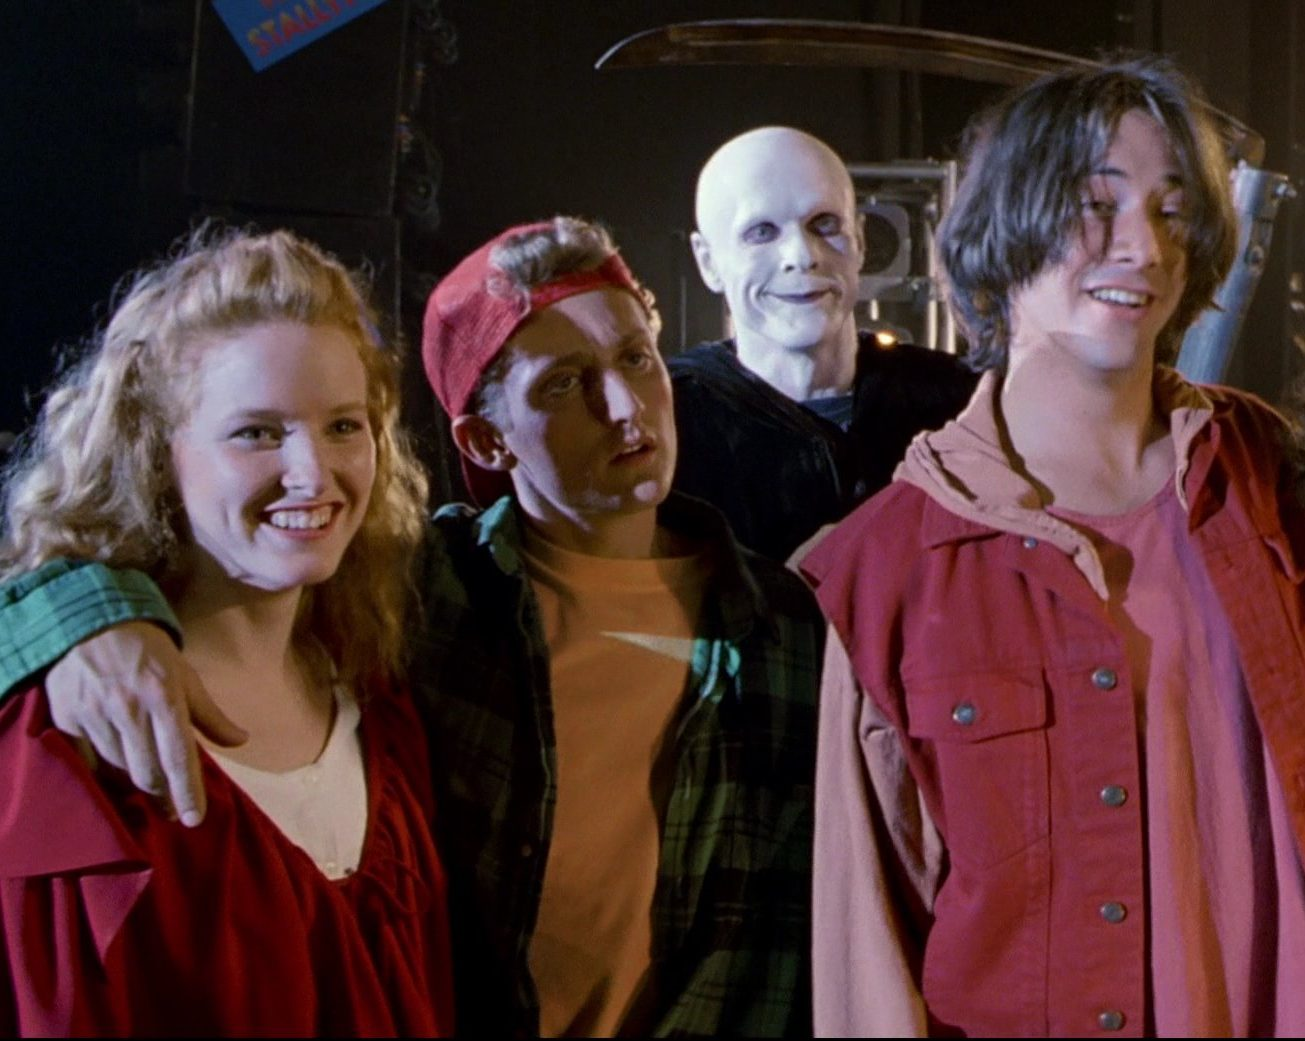 1 261 e1606394243569 30 Most Triumphant Truths About Bill & Ted's Bogus Journey